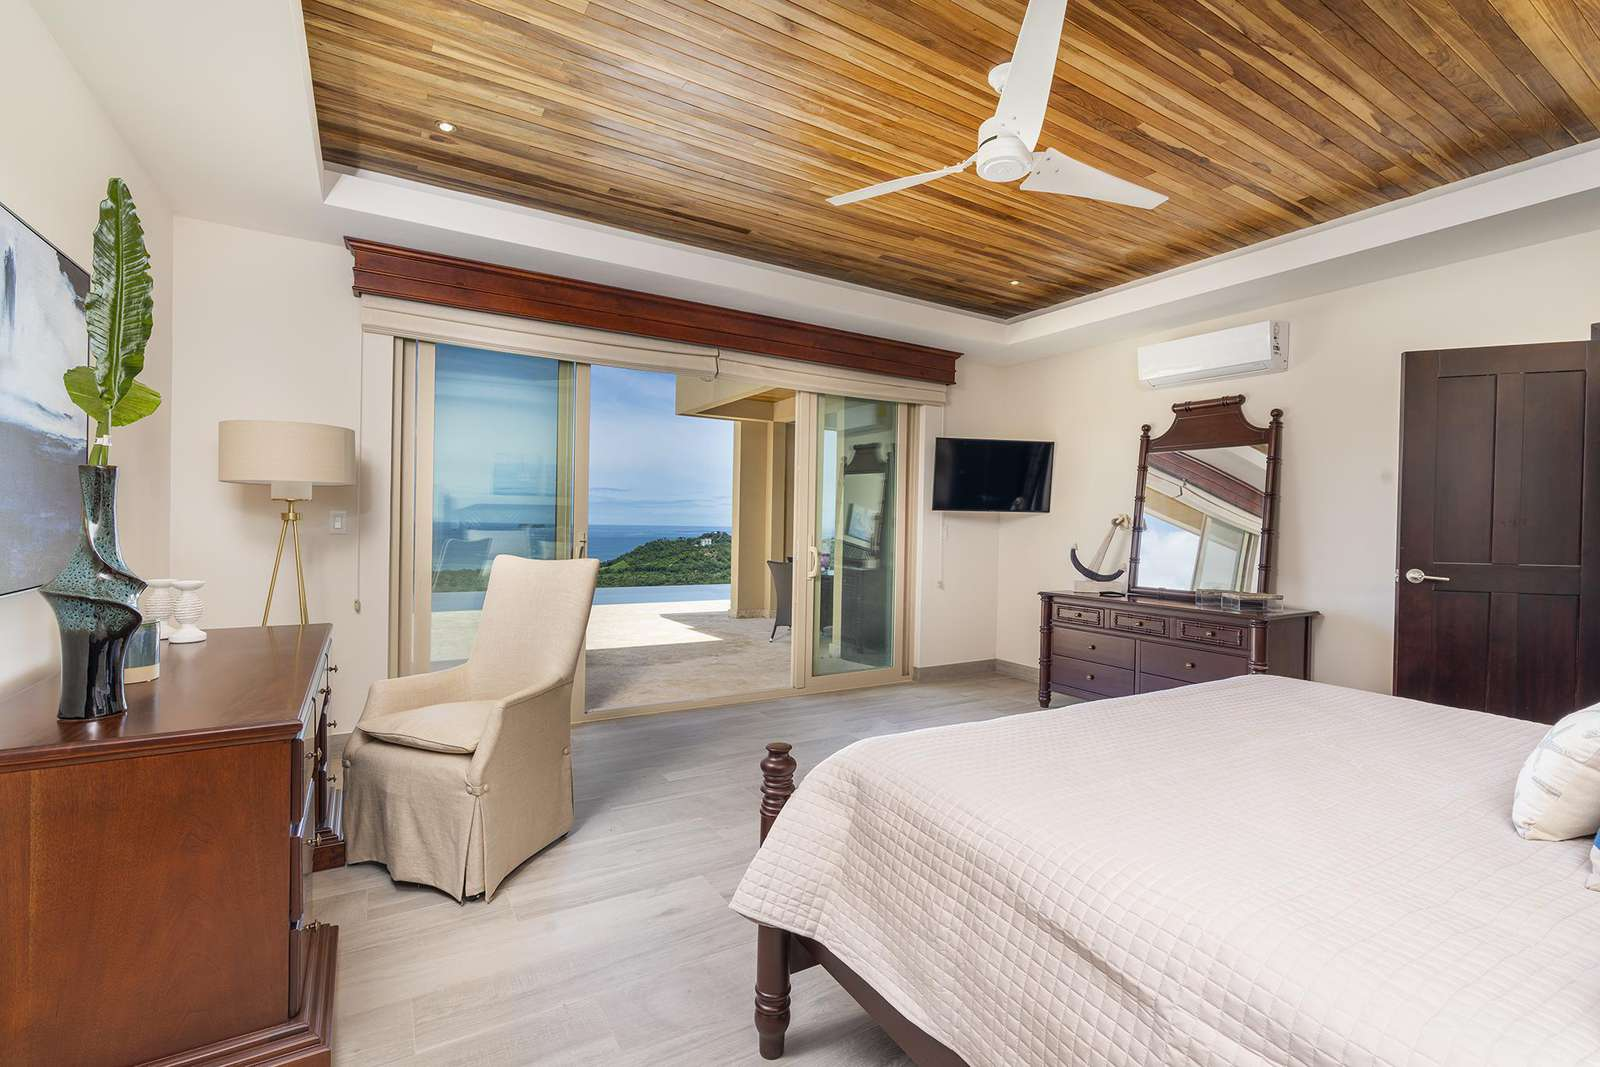 Master Suite #1, main level, king bed, private full bathroom, ocean views, access to pool and terrace areas